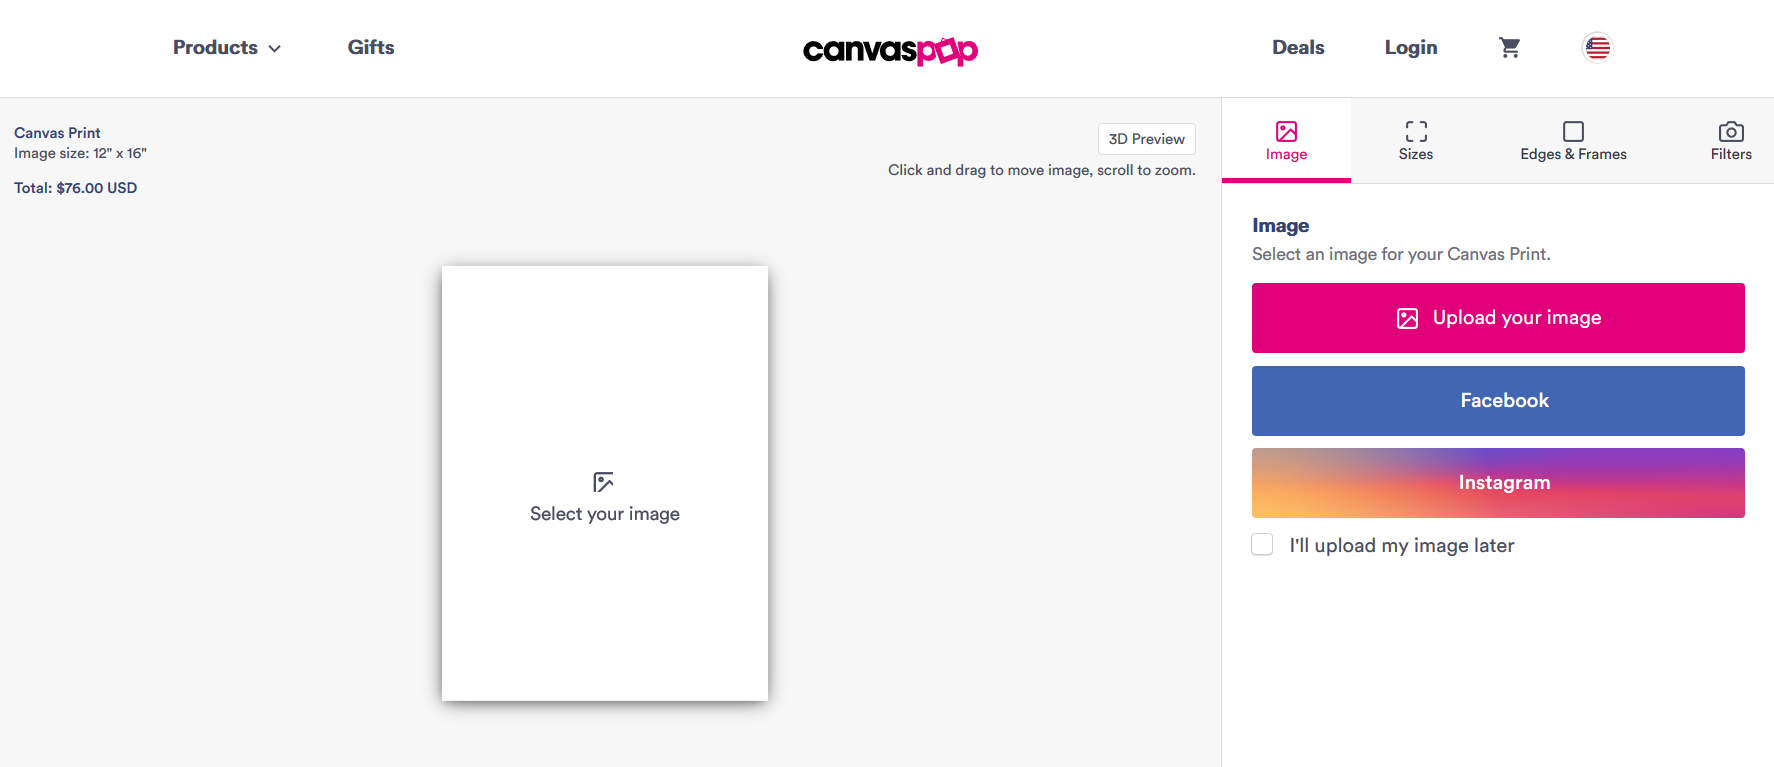 Canvas Pop Ordering Page